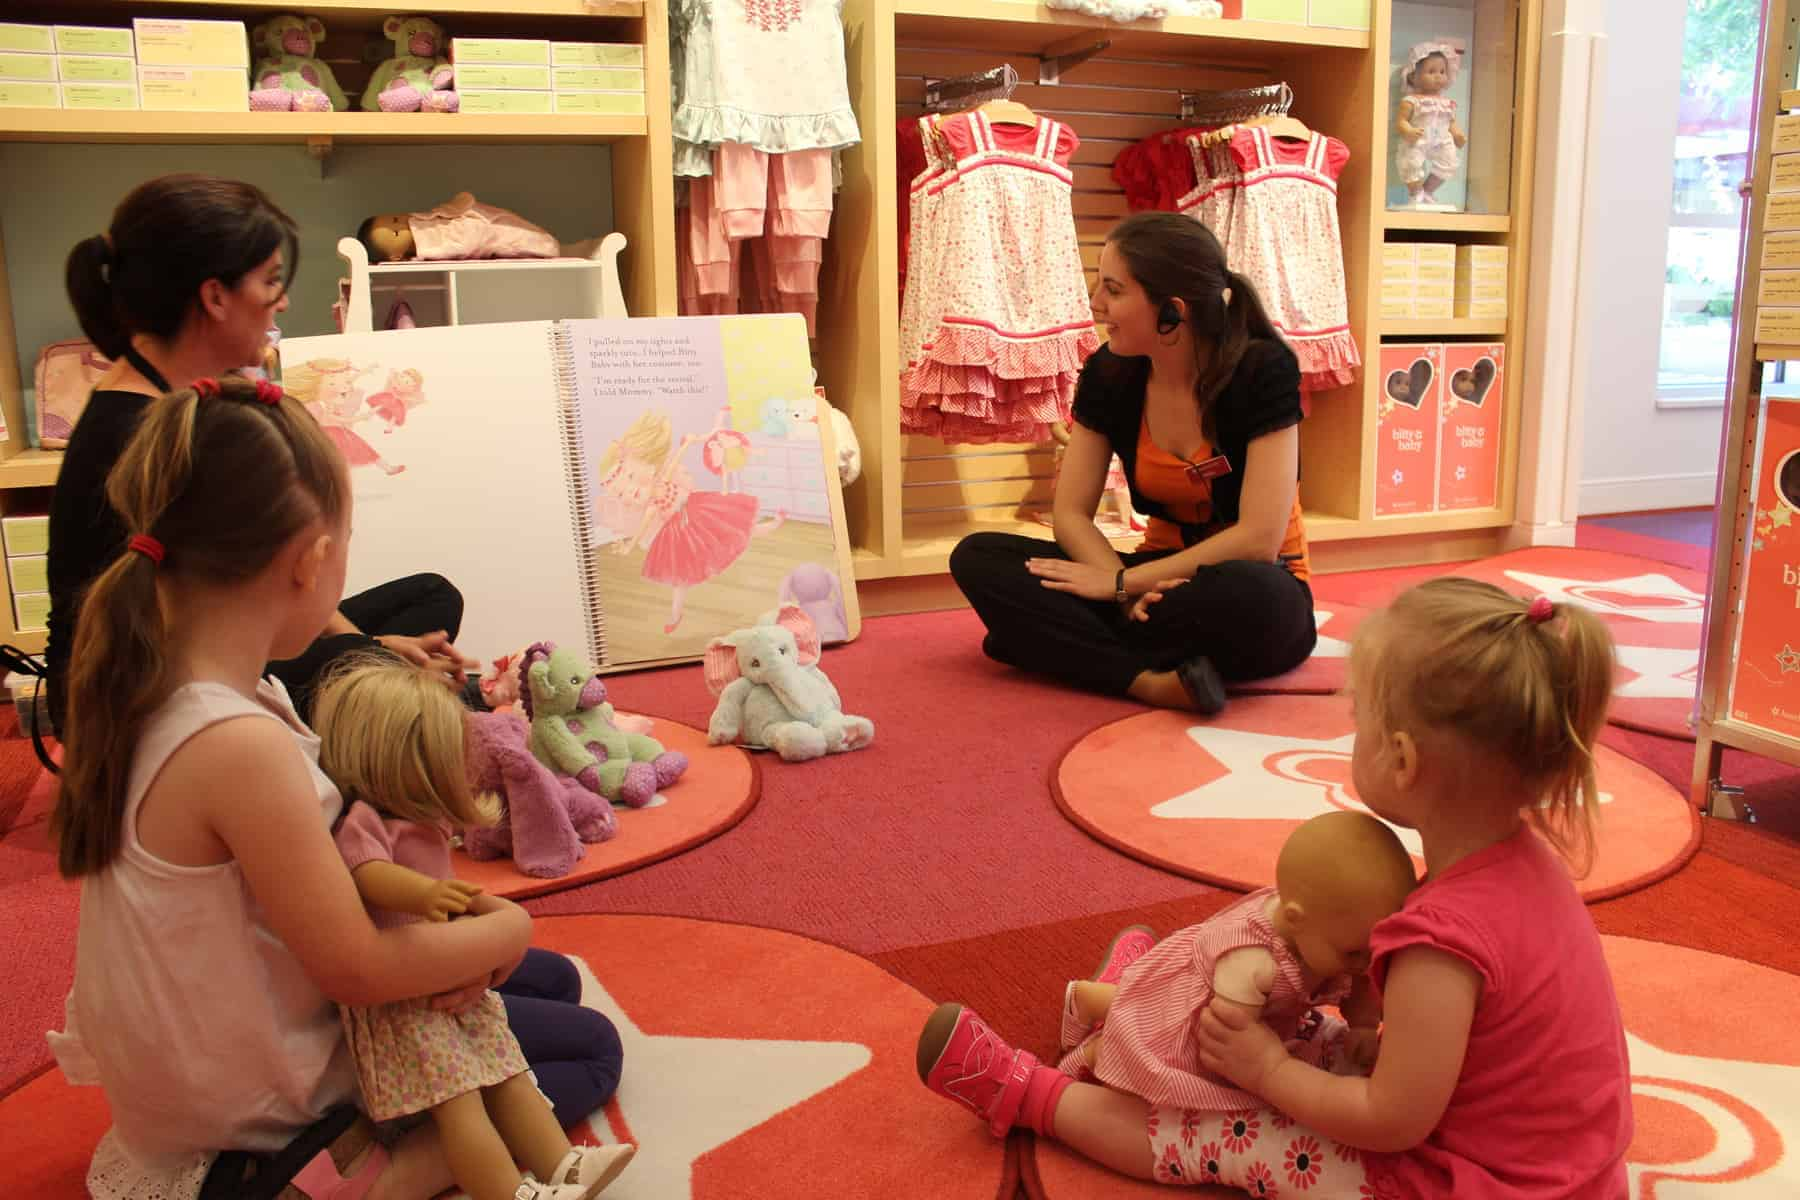 Hanging out at the new American Girl store